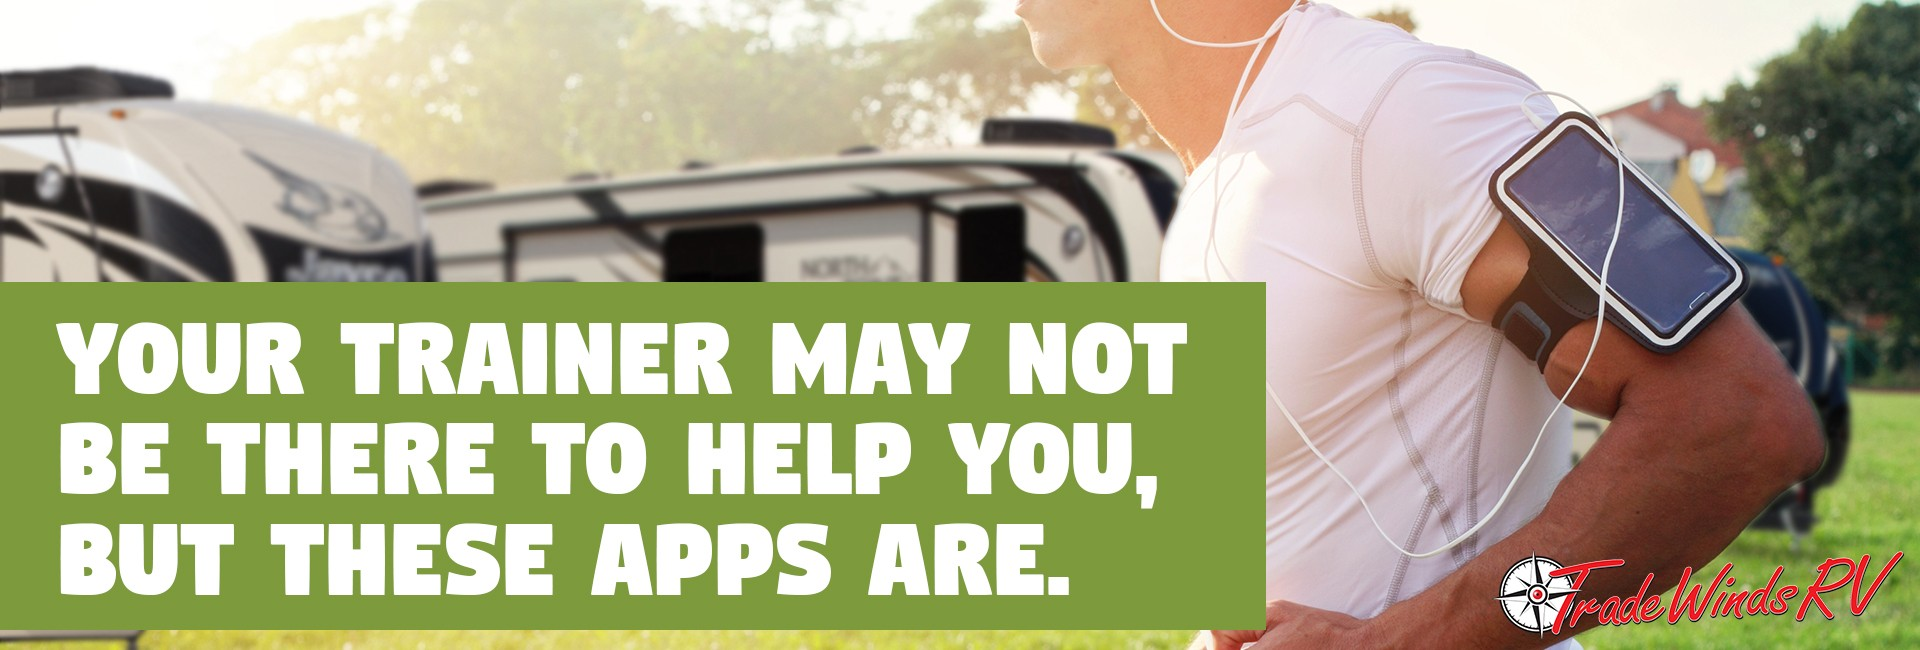 no-trainer-use-these-apps